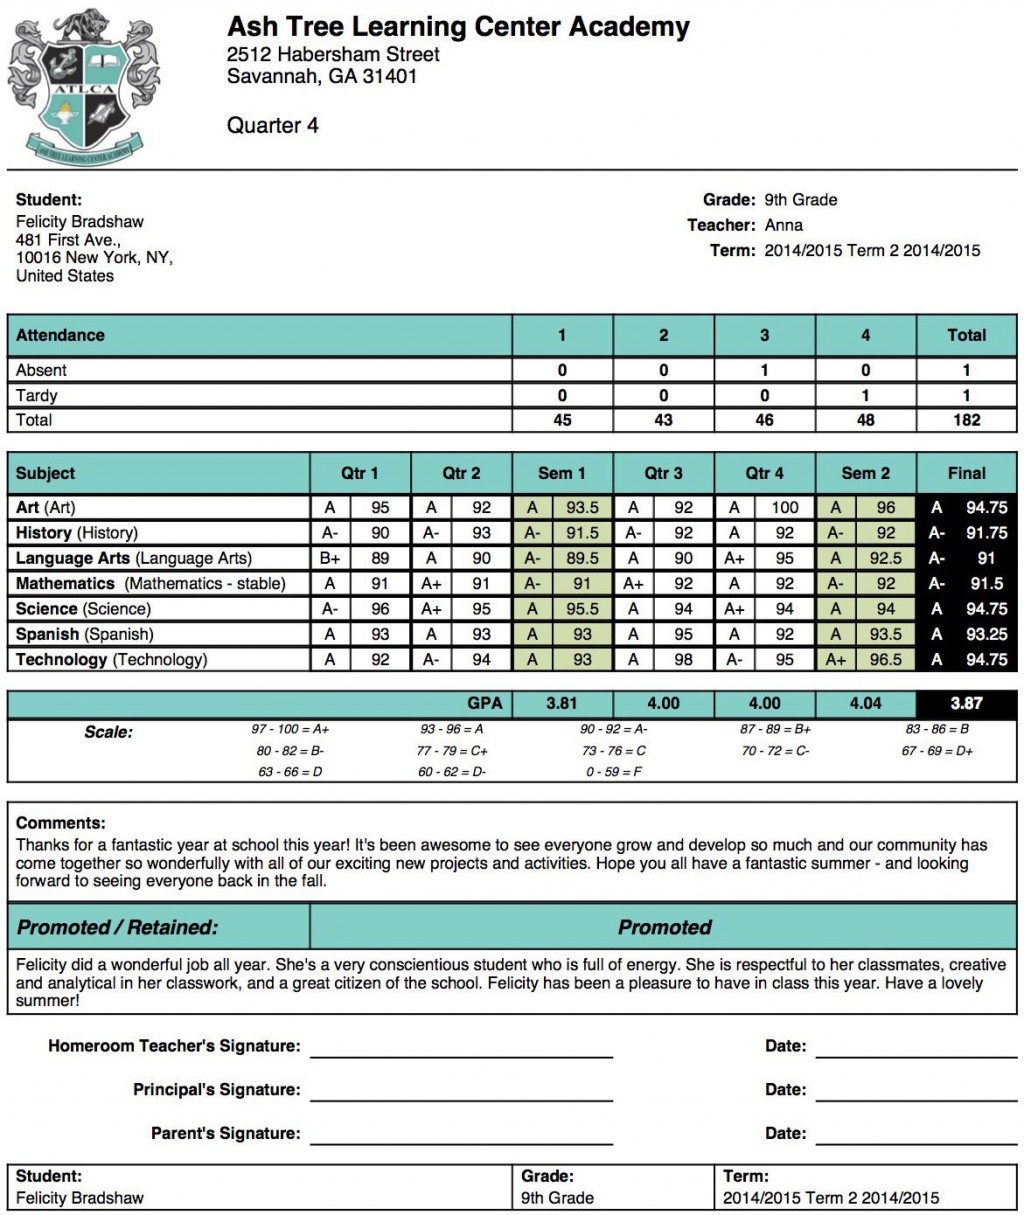 004 Astounding Middle School Report Card Template High Definition  Pdf Homeschool Free Standard Based SampleLarge